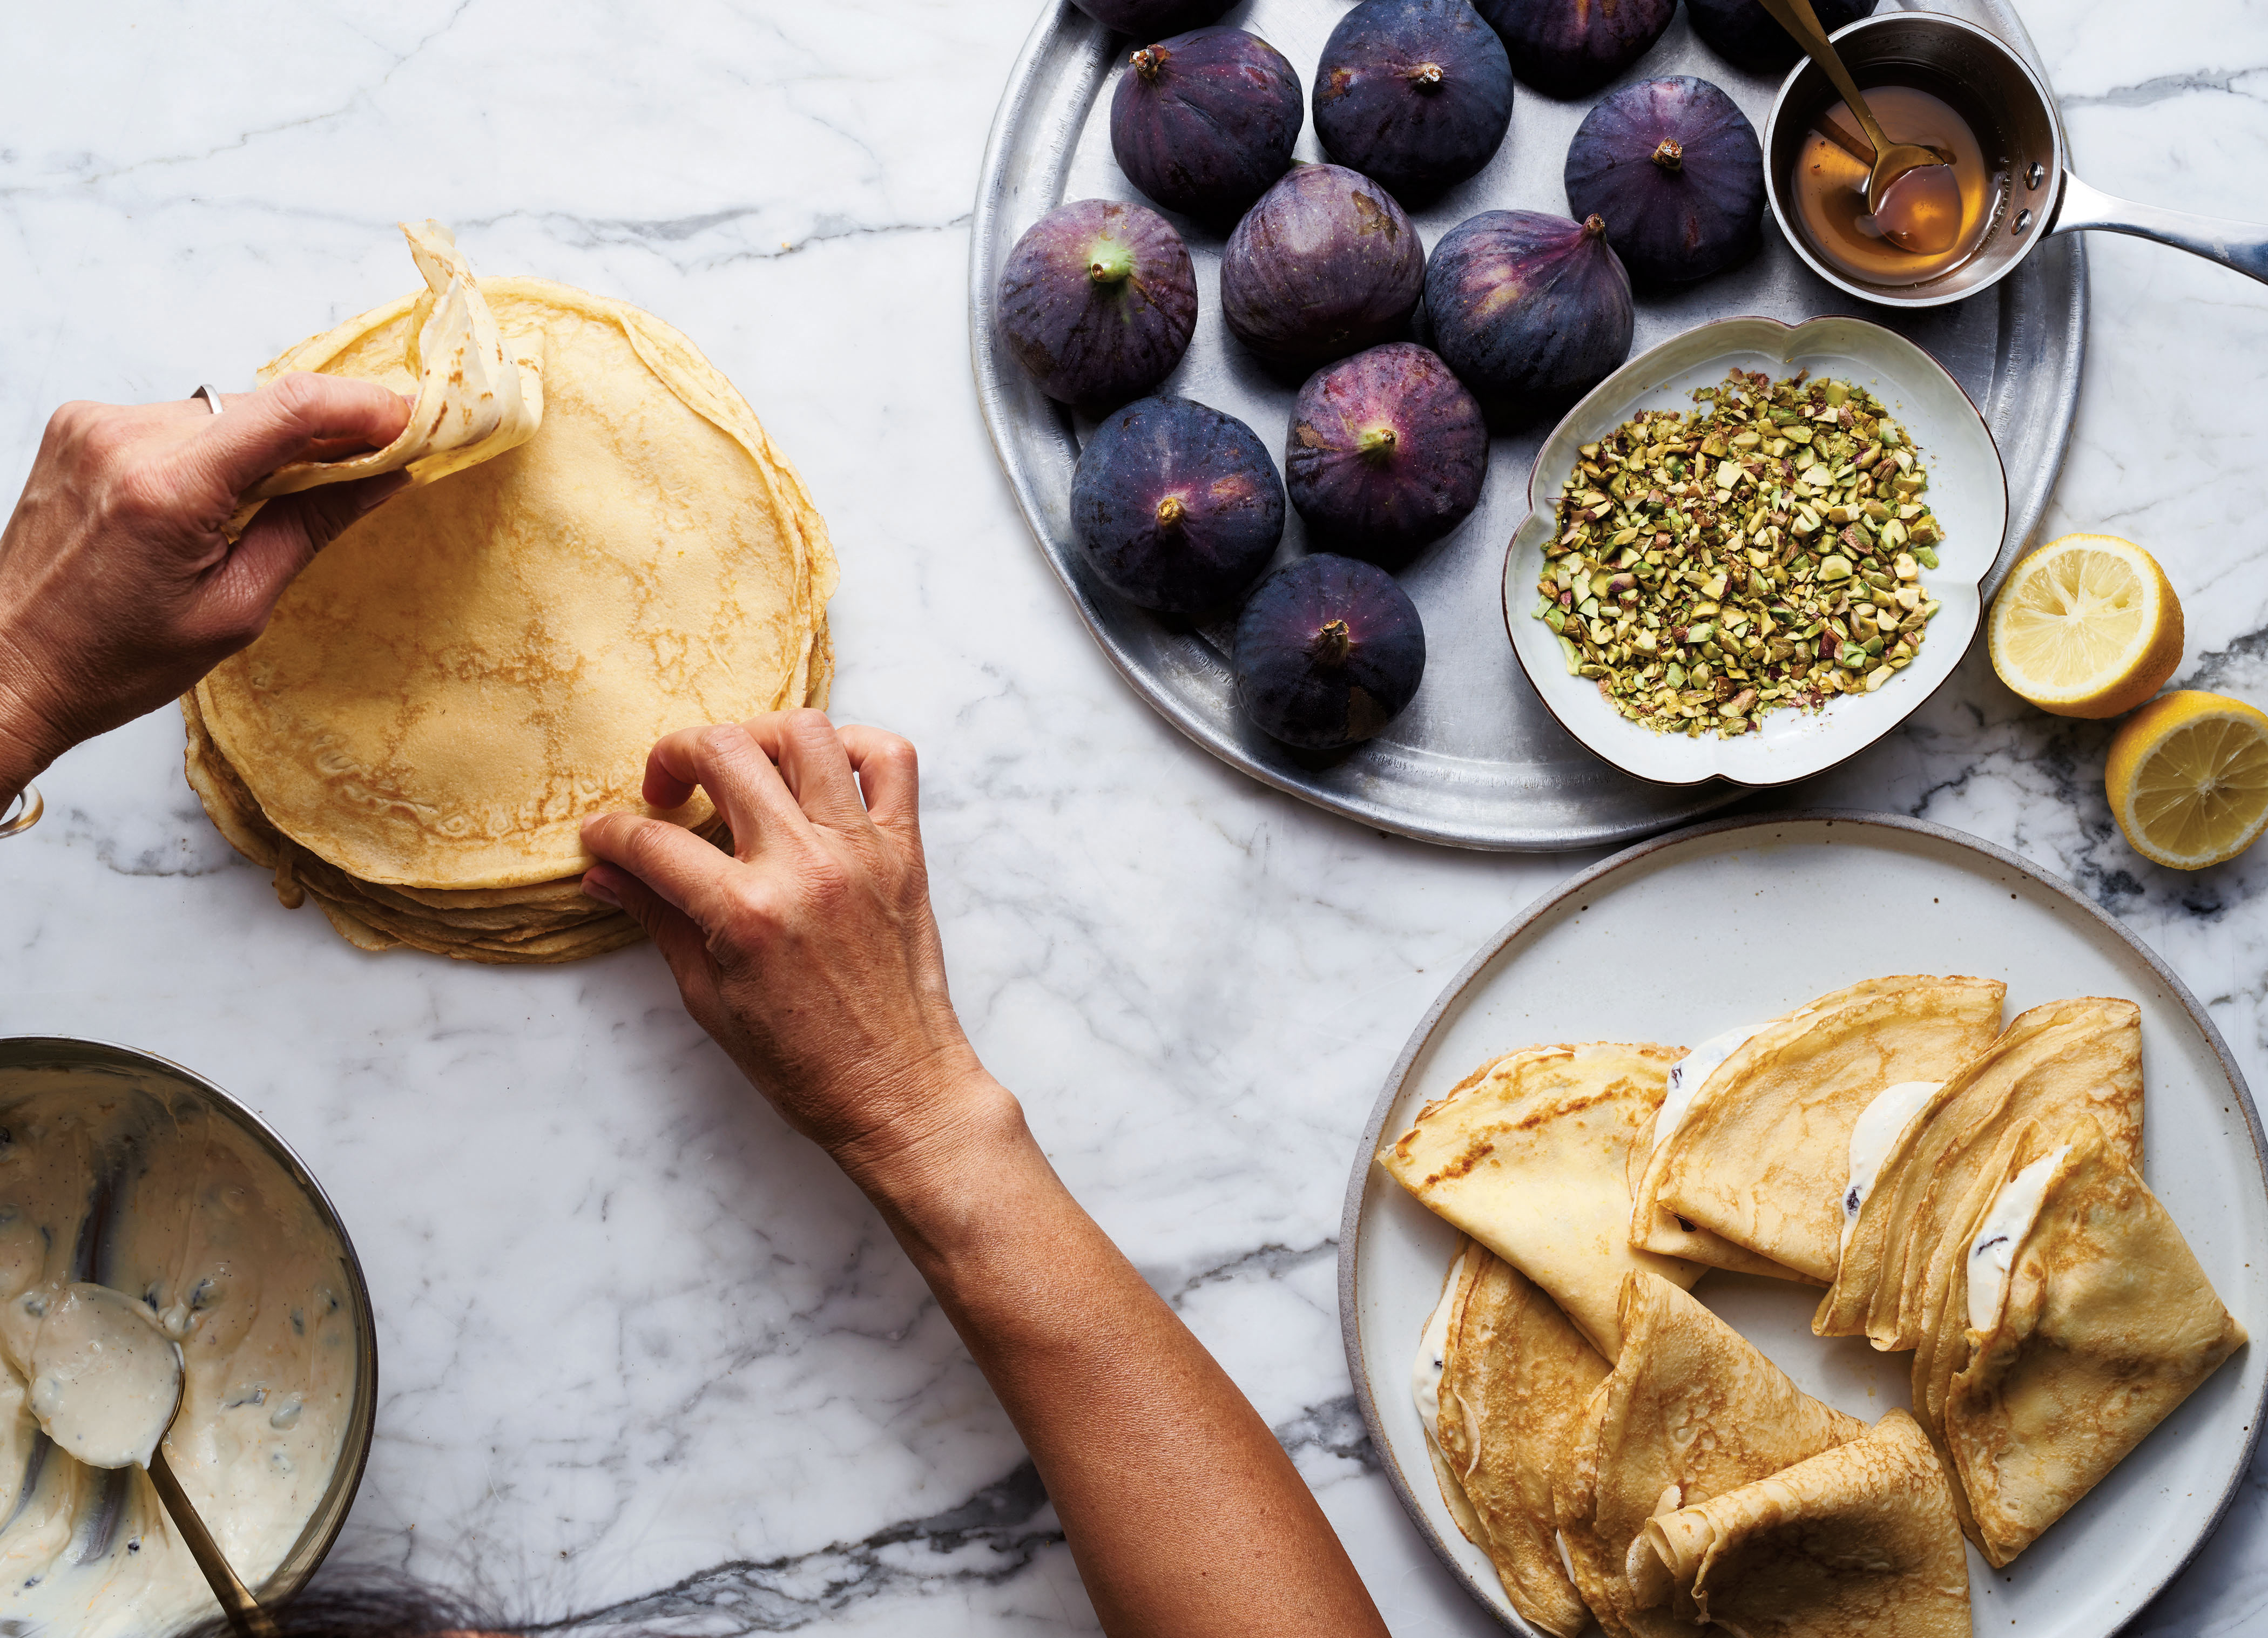 sweet ricotta crepes with figs